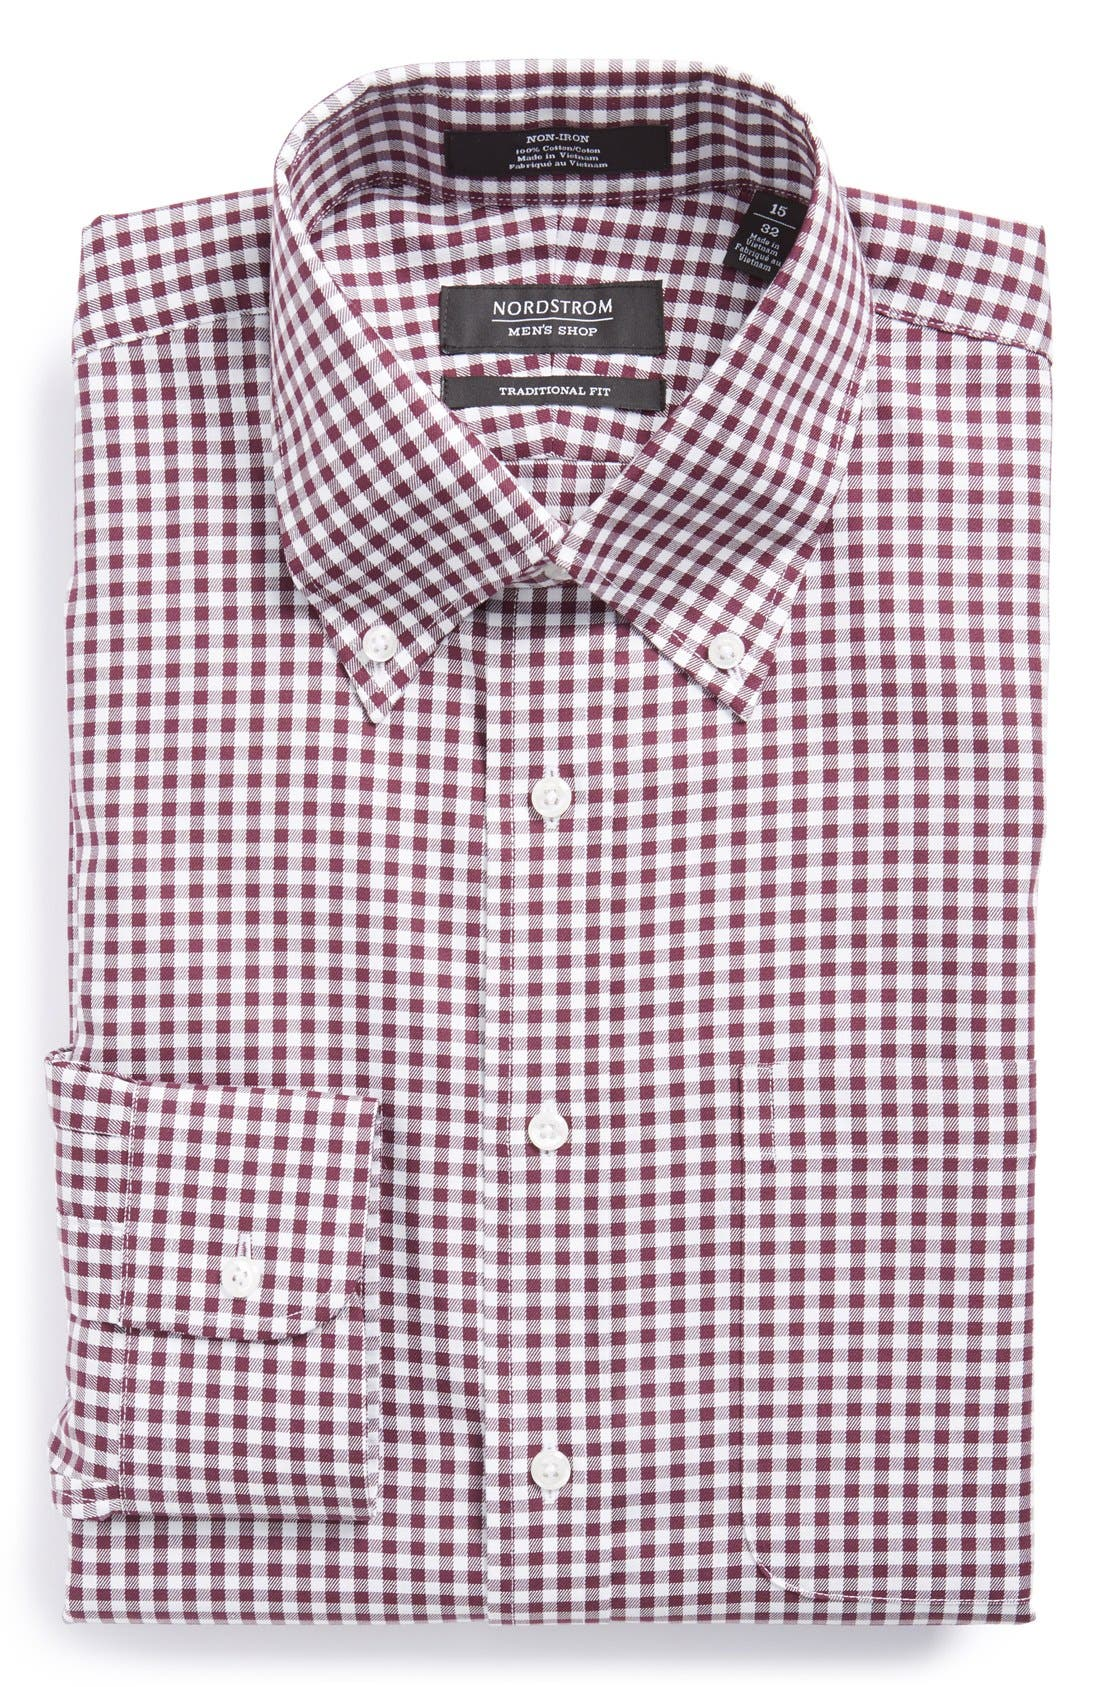 NORDSTROM MEN'S SHOP Traditional Fit Non-Iron Gingham Dress